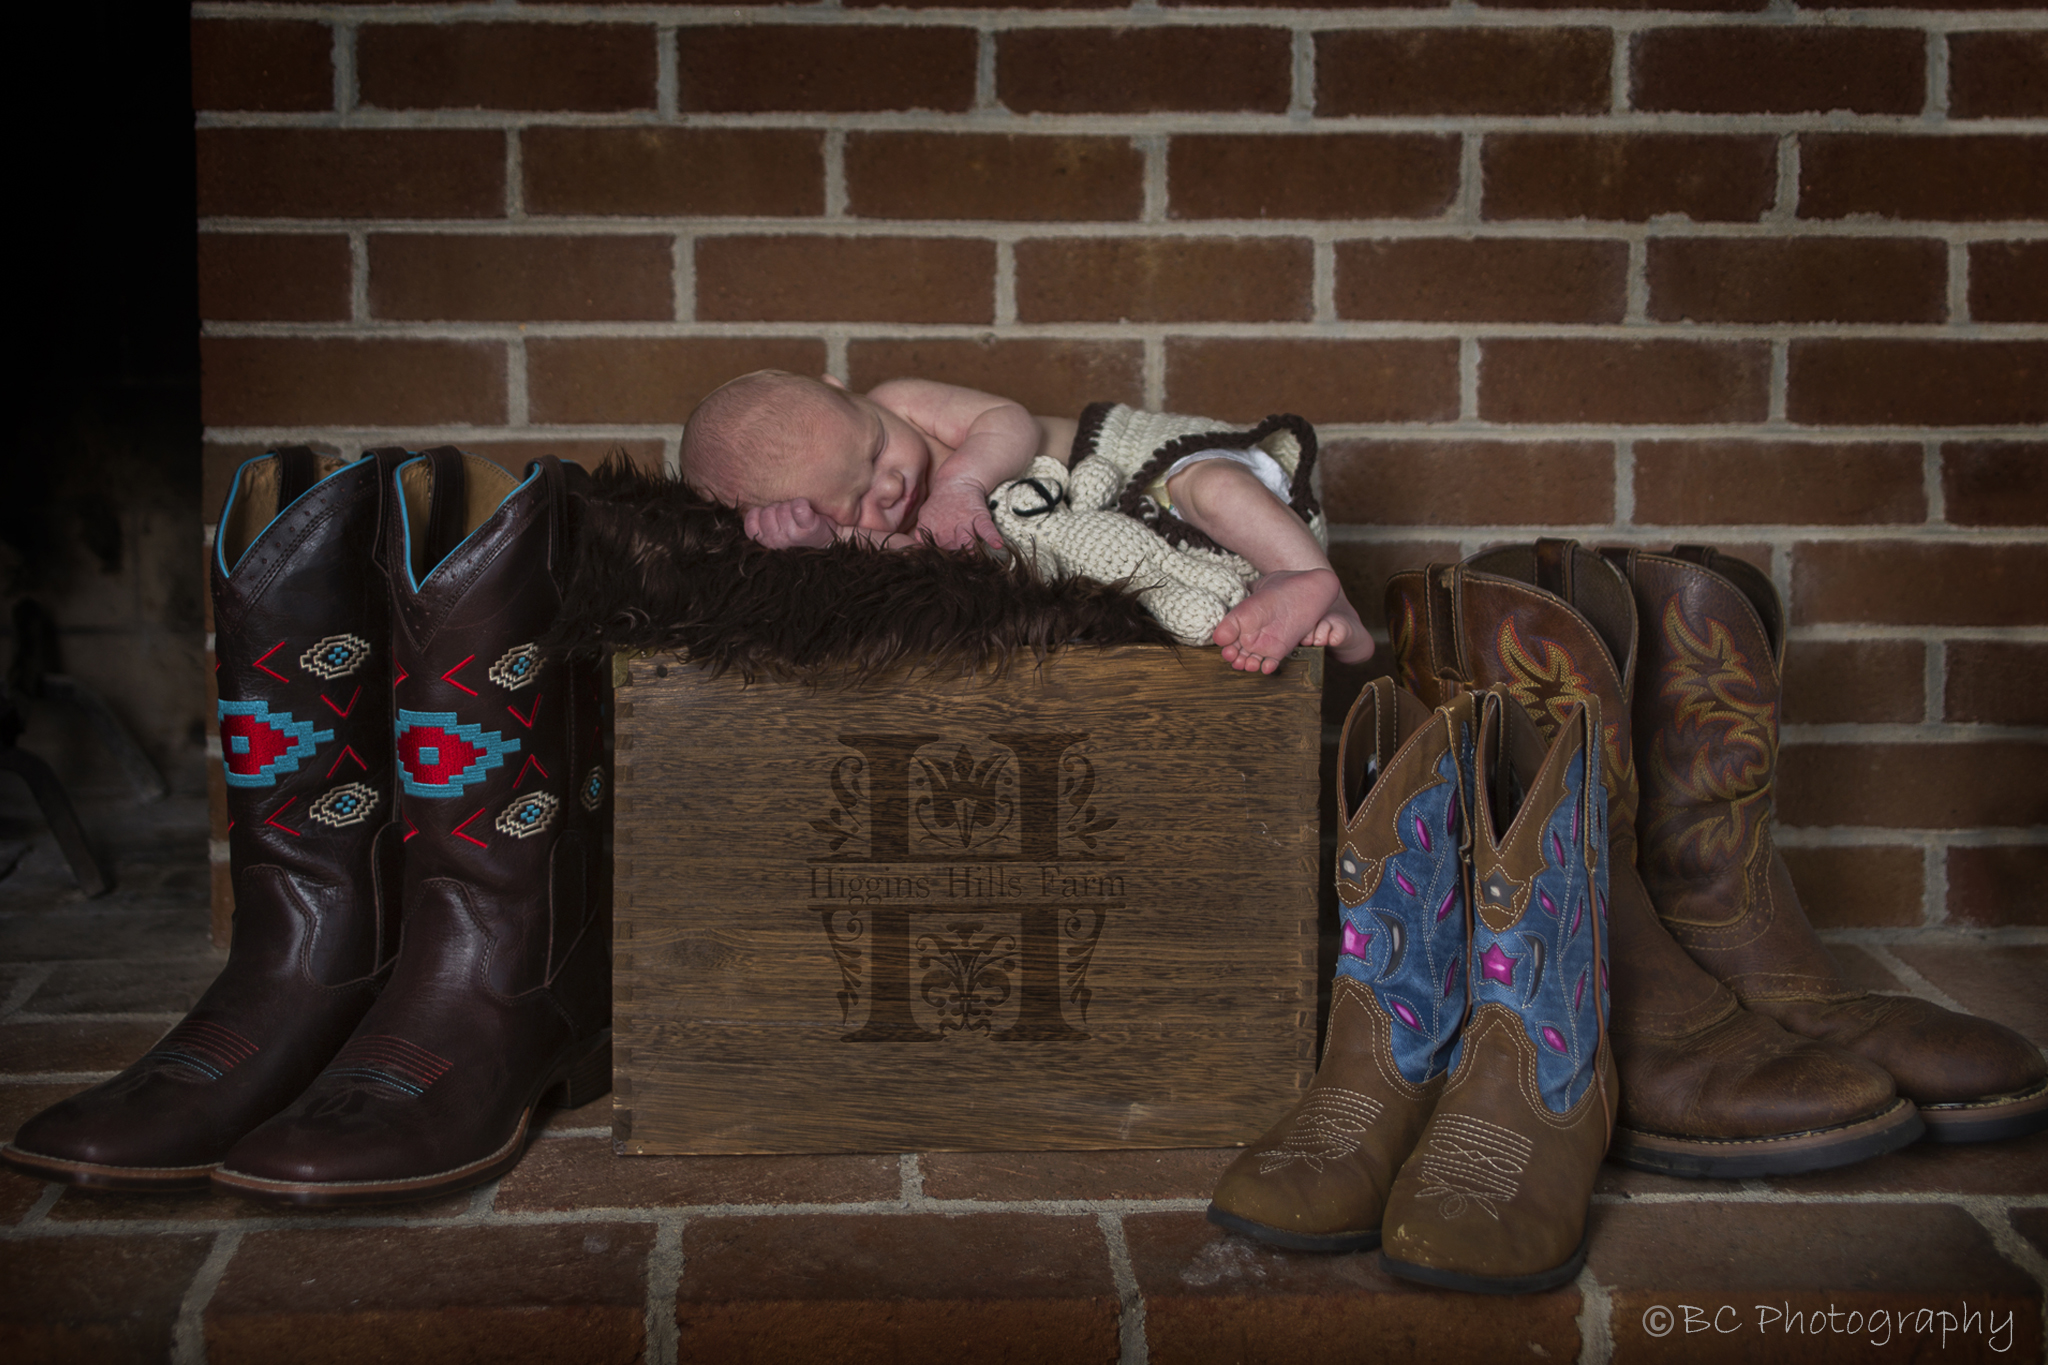 Maverick resting peacefully next to his family's boots.